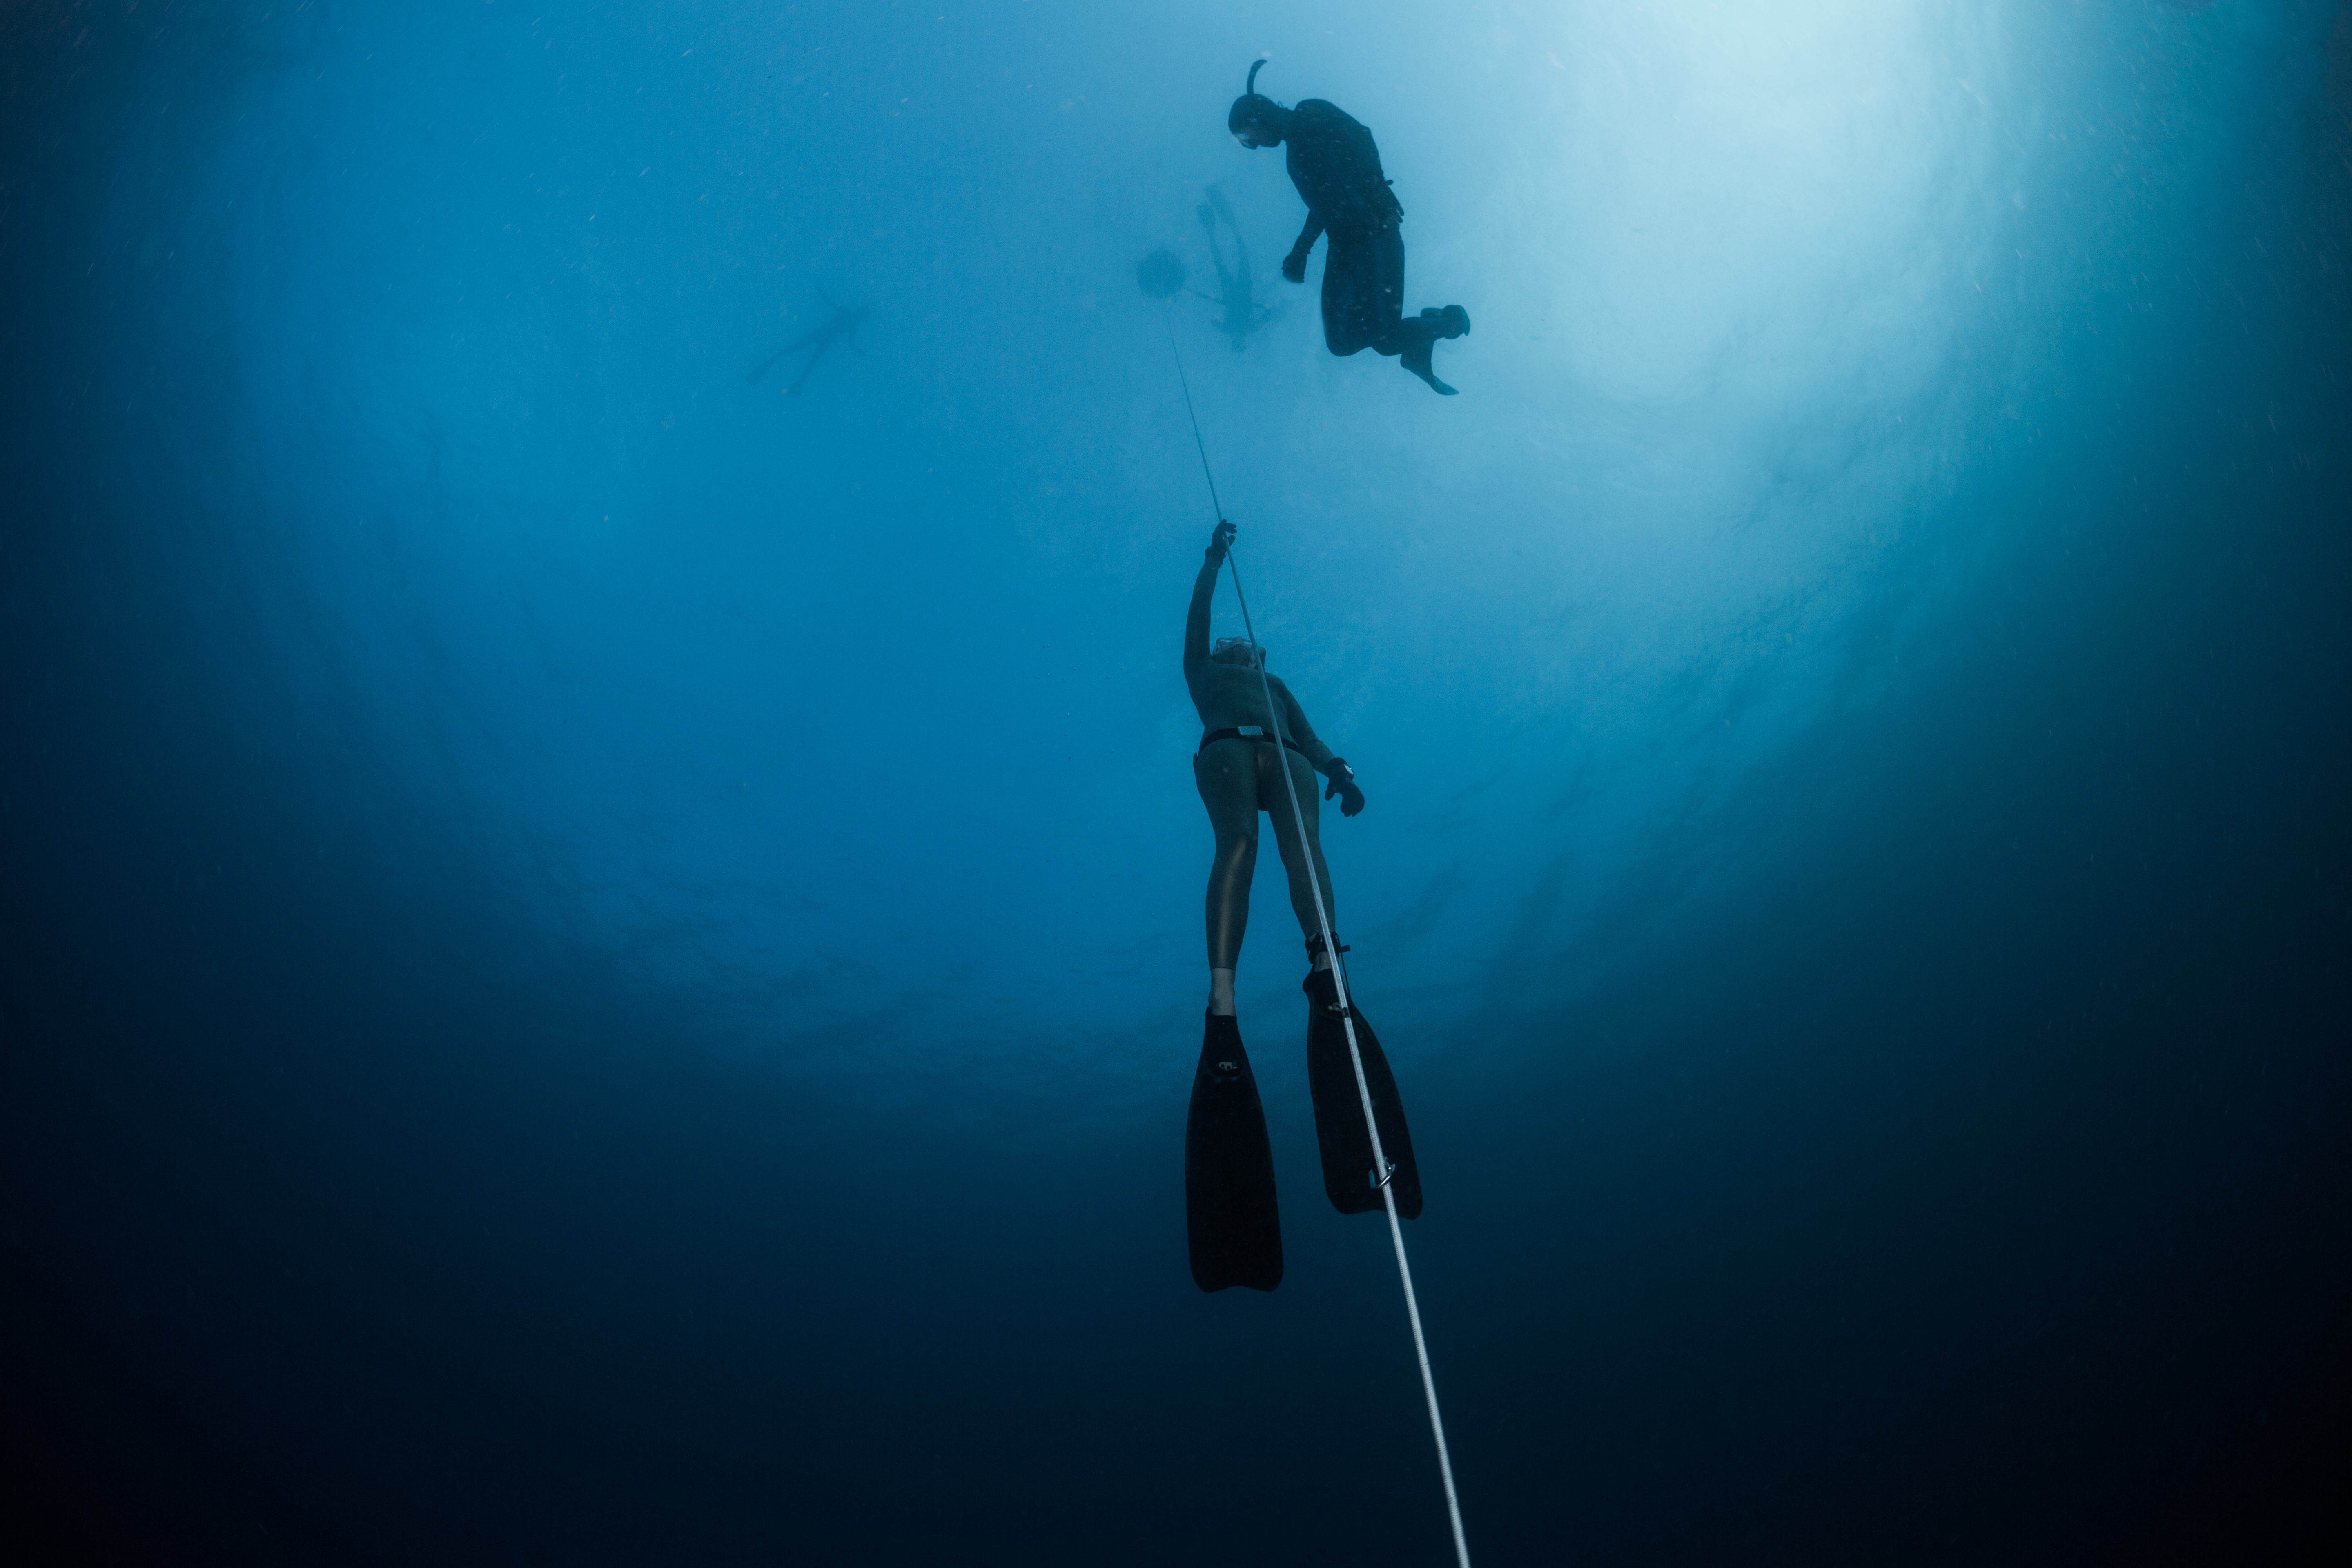 Freediver ascending along the rope in the depth